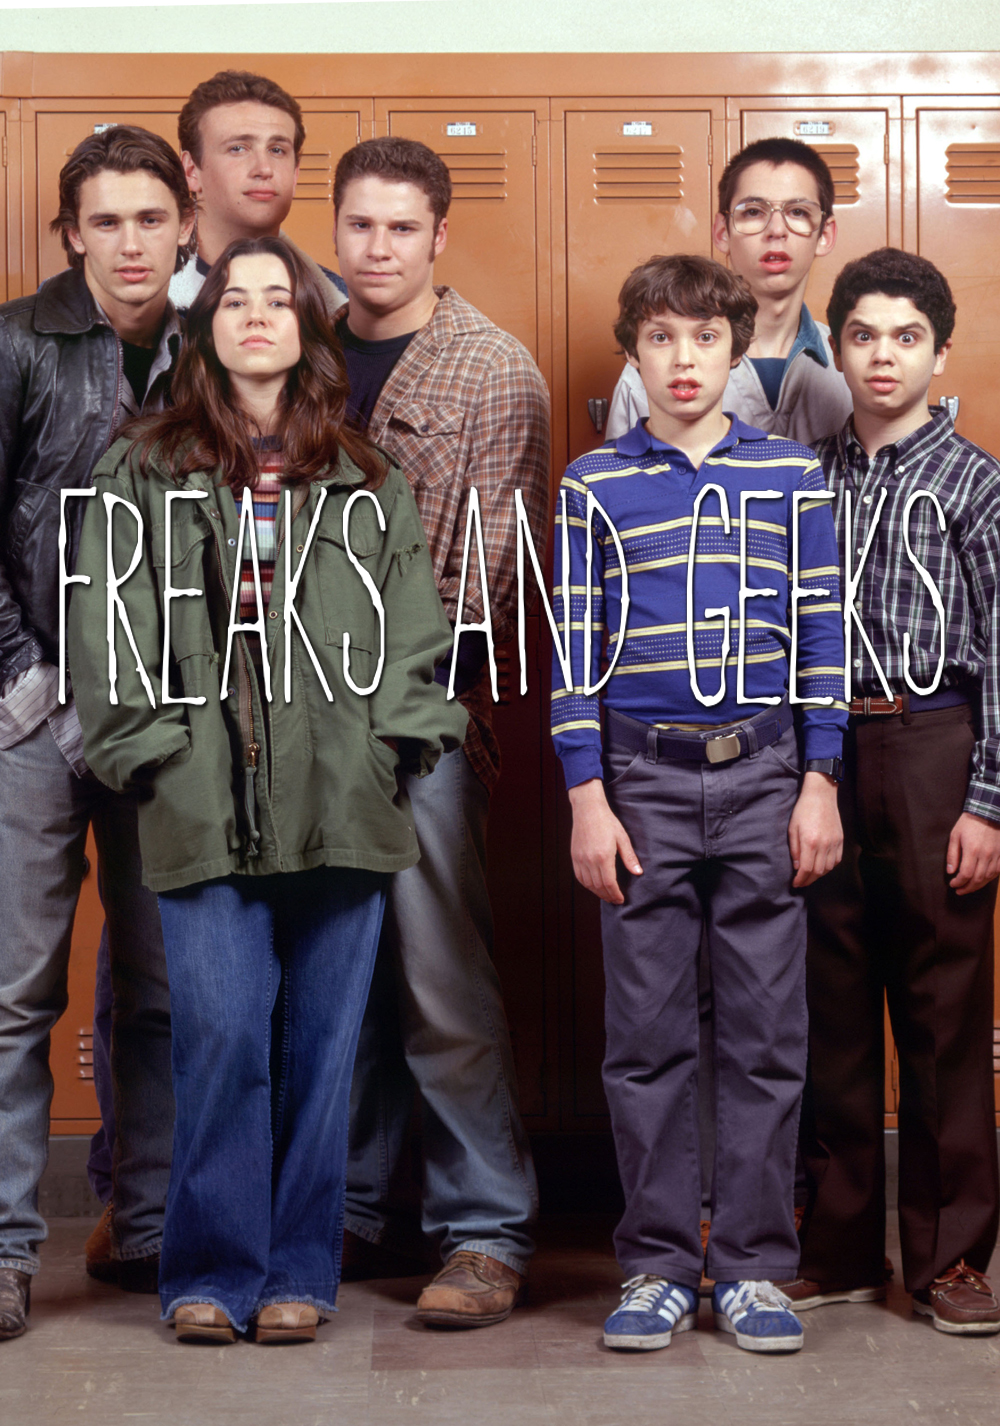 "A poster of 7 teenagers in front of lockers. Four on the left are social rejects. Three on the right are dweebs. Across the image it says ""Freaks and Geeks."" Am image from a short-lived 1999 television show."